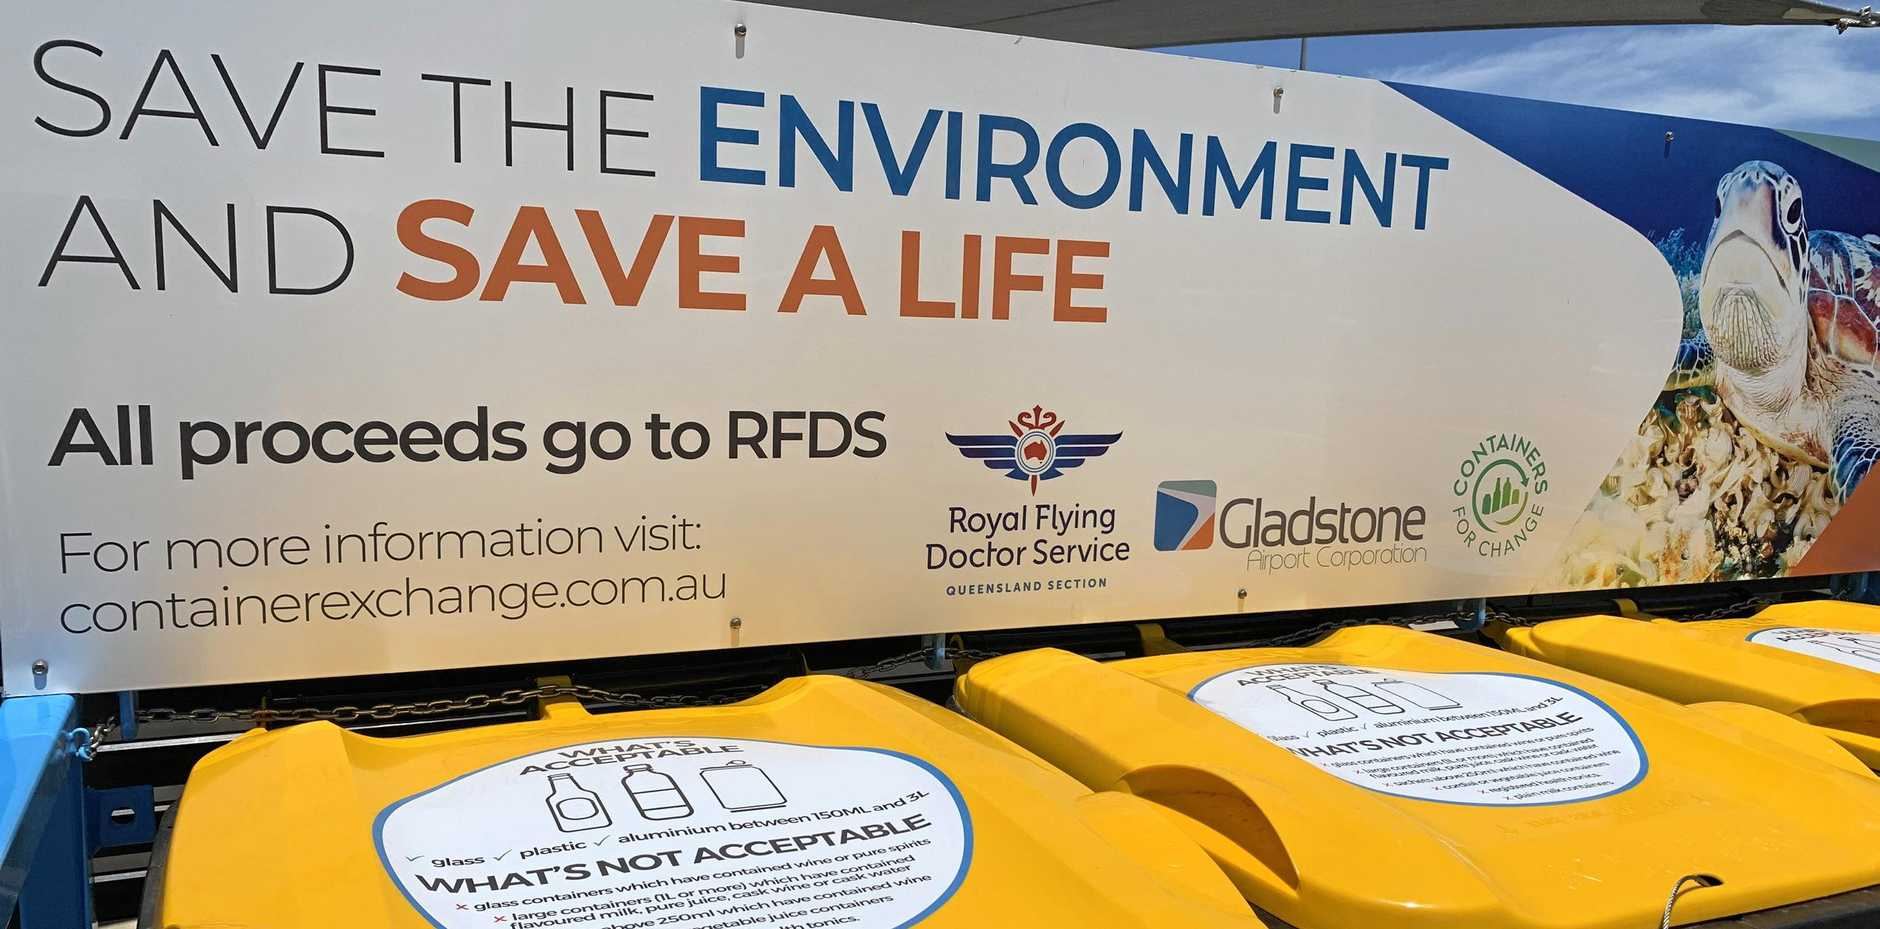 GOOD CAUSE: Gladstone Airport Corporation is helping the environment and the Royal Flying Doctor Service with a container exchange program at Gladstone Airport.